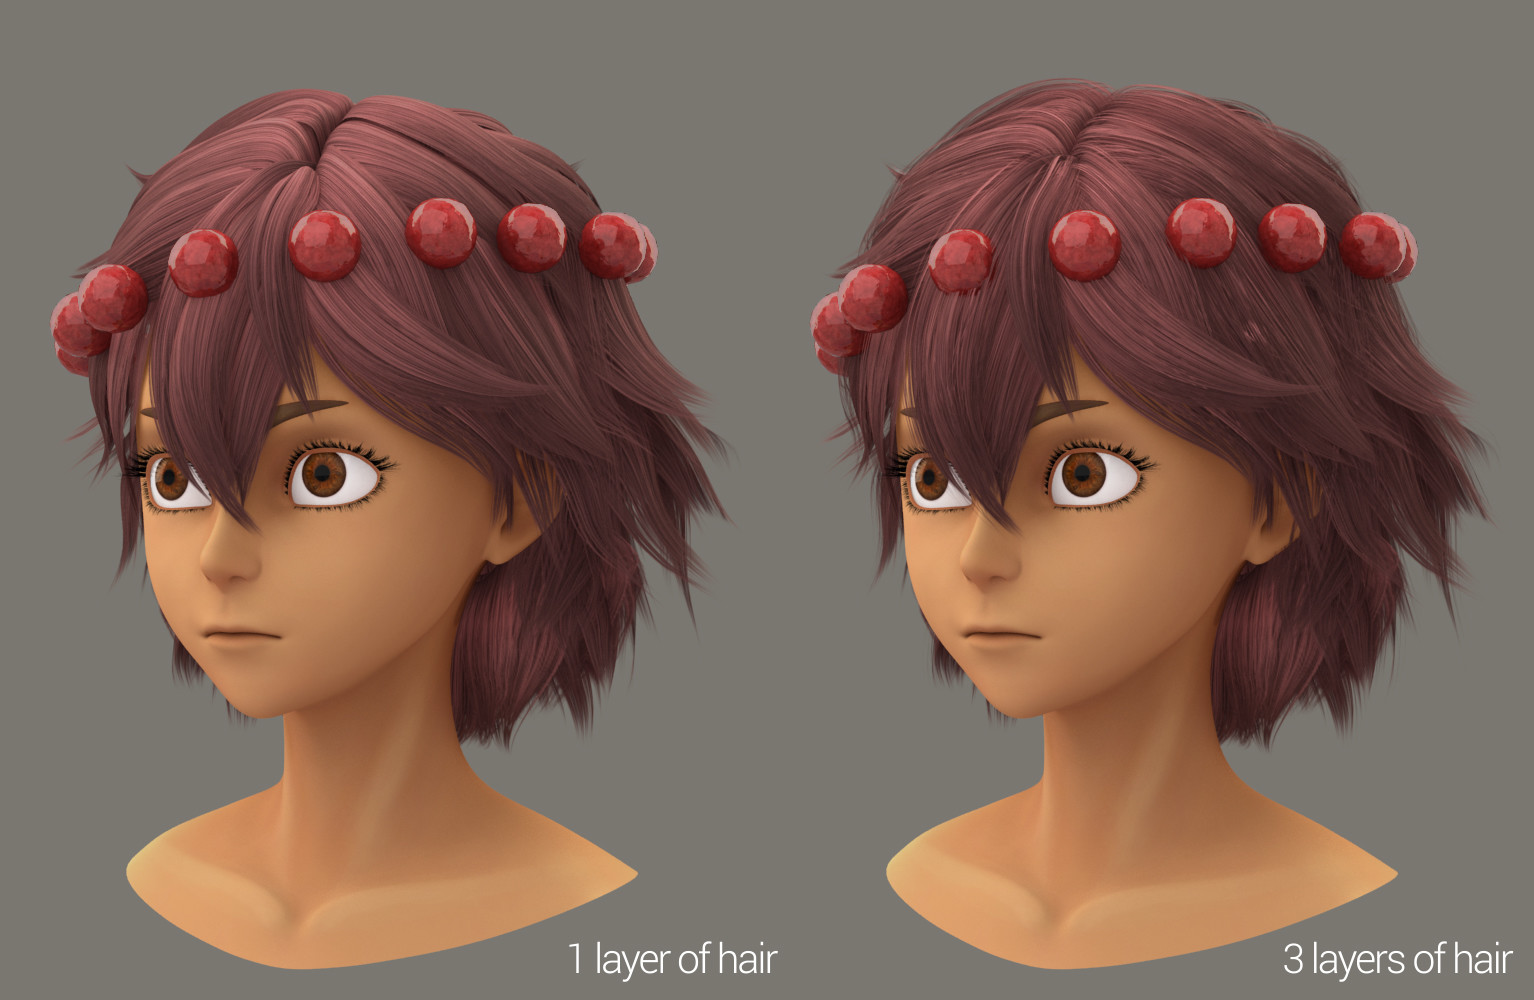 Test using extra layers of hair